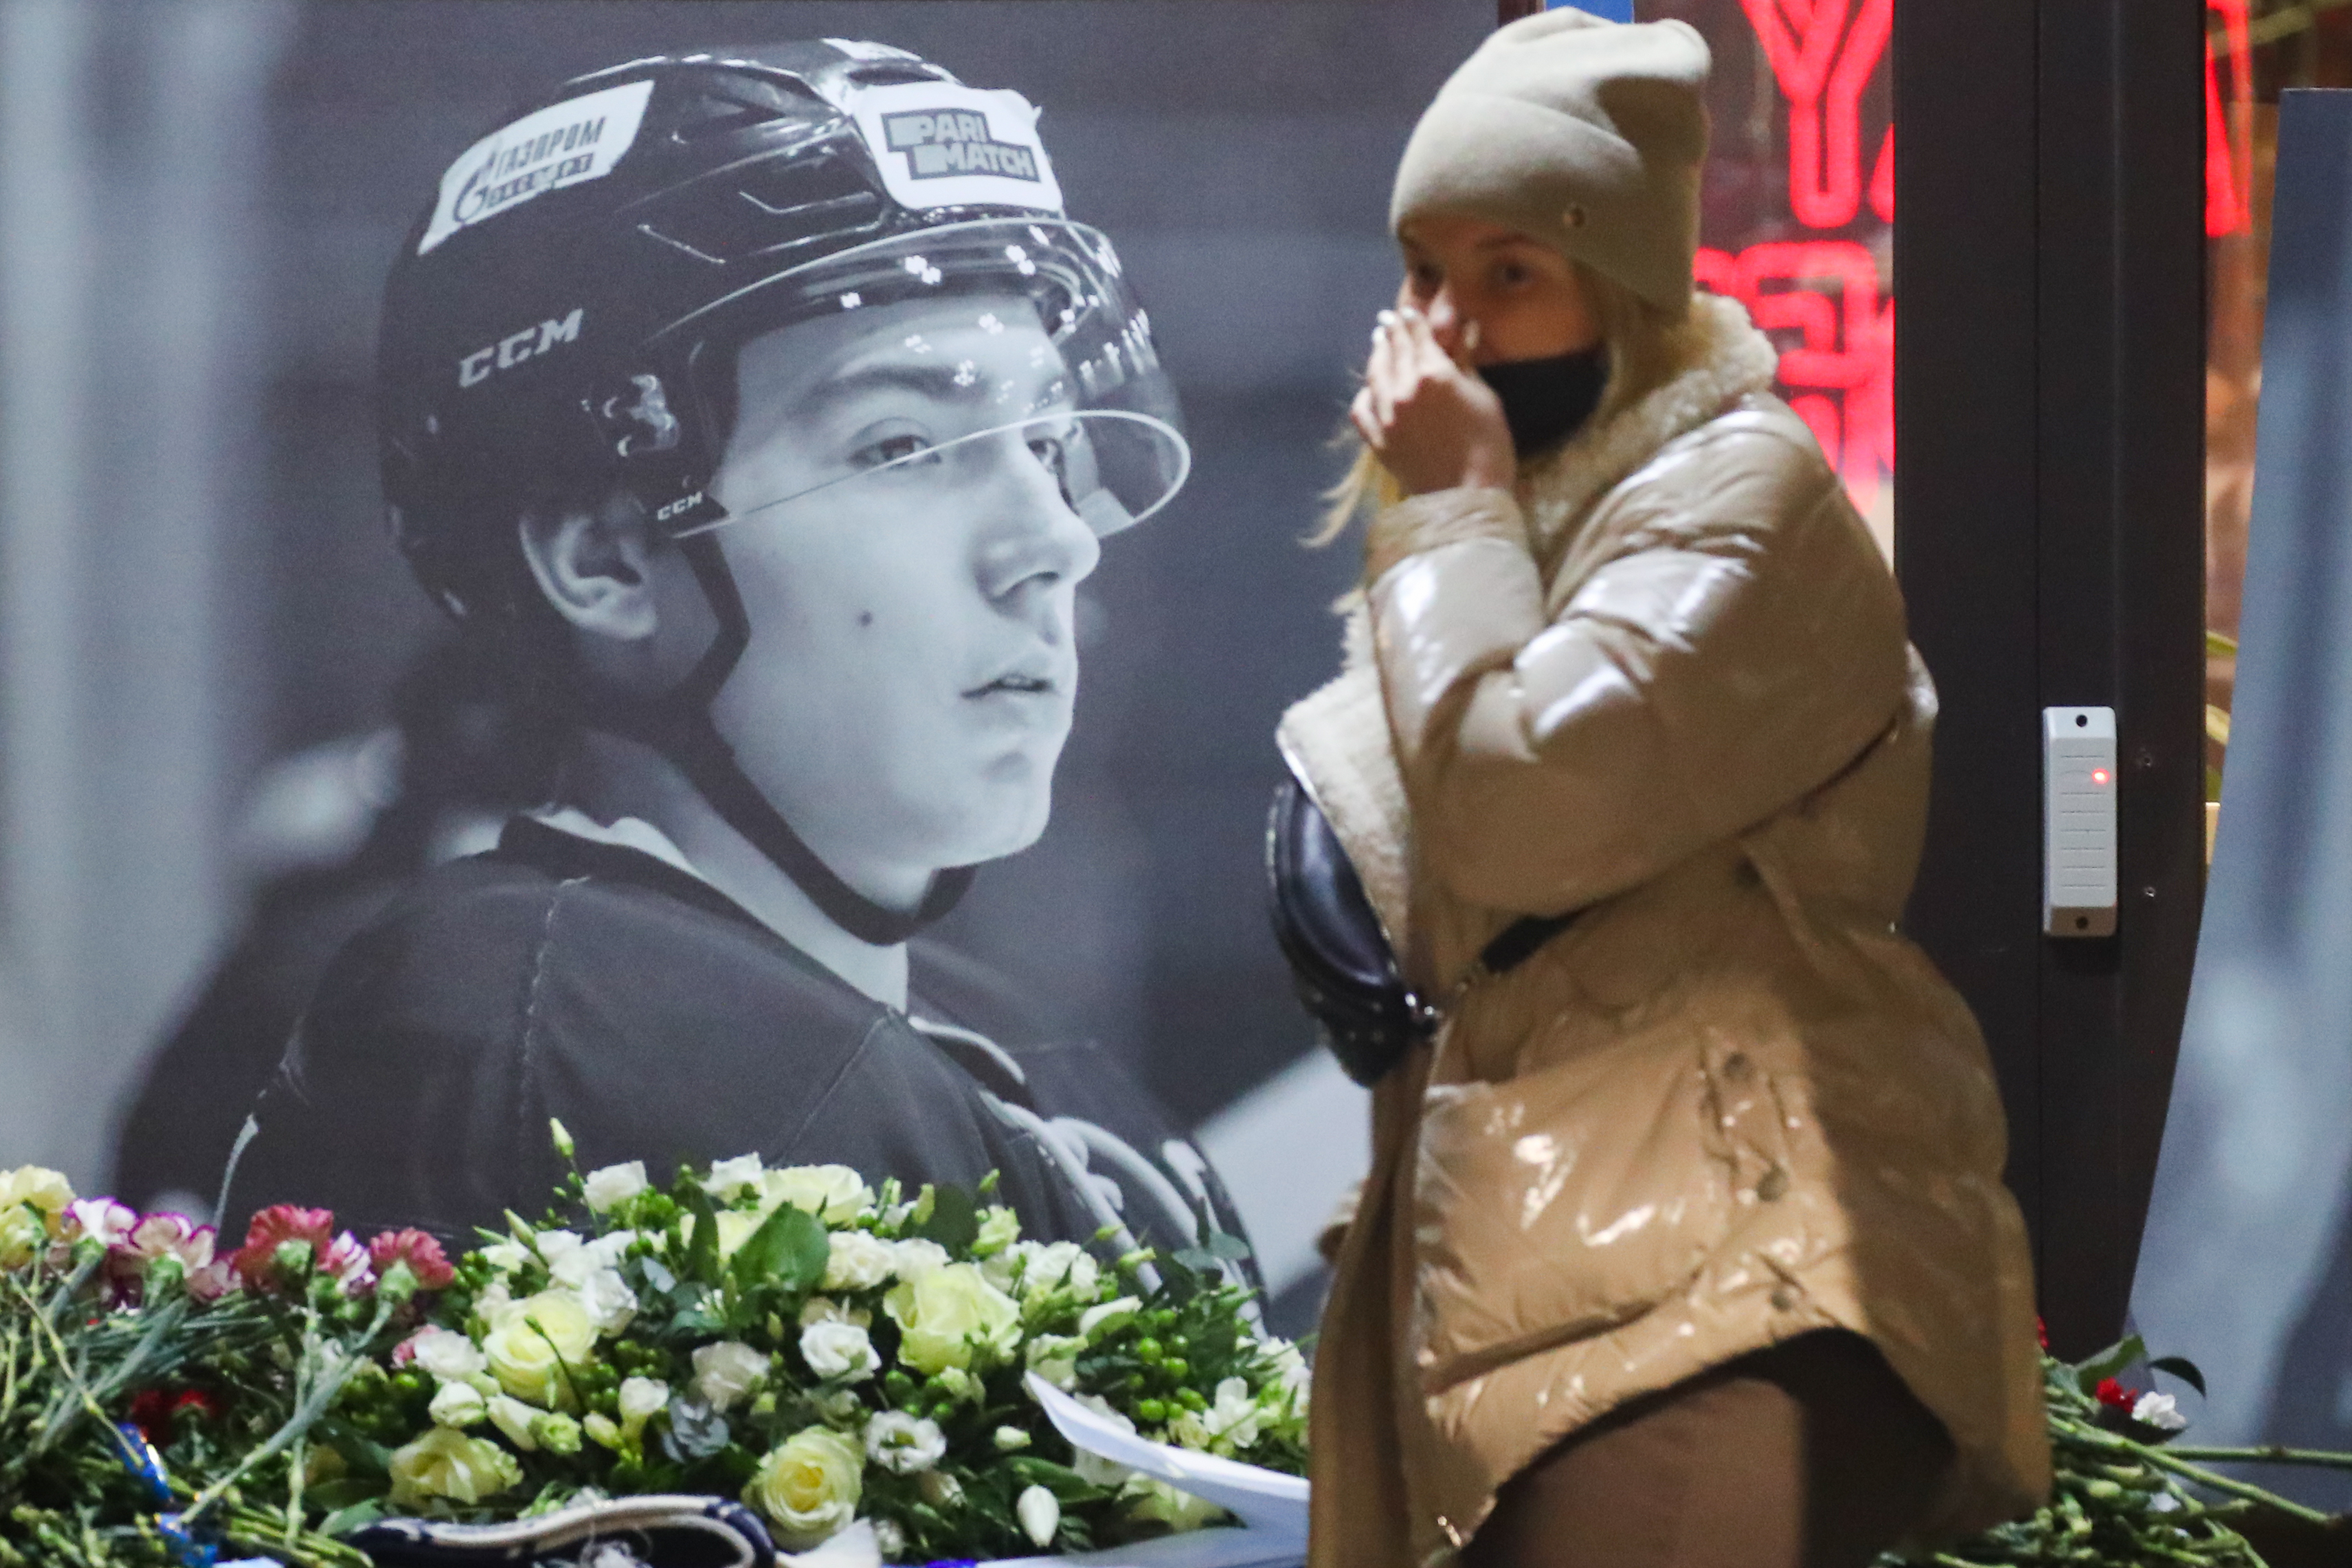 A woman stands before a makeshift memorial set up outside the Yubileyny Sports Palace in tribute to the late Junior Hockey League player Timur Faizutdinov